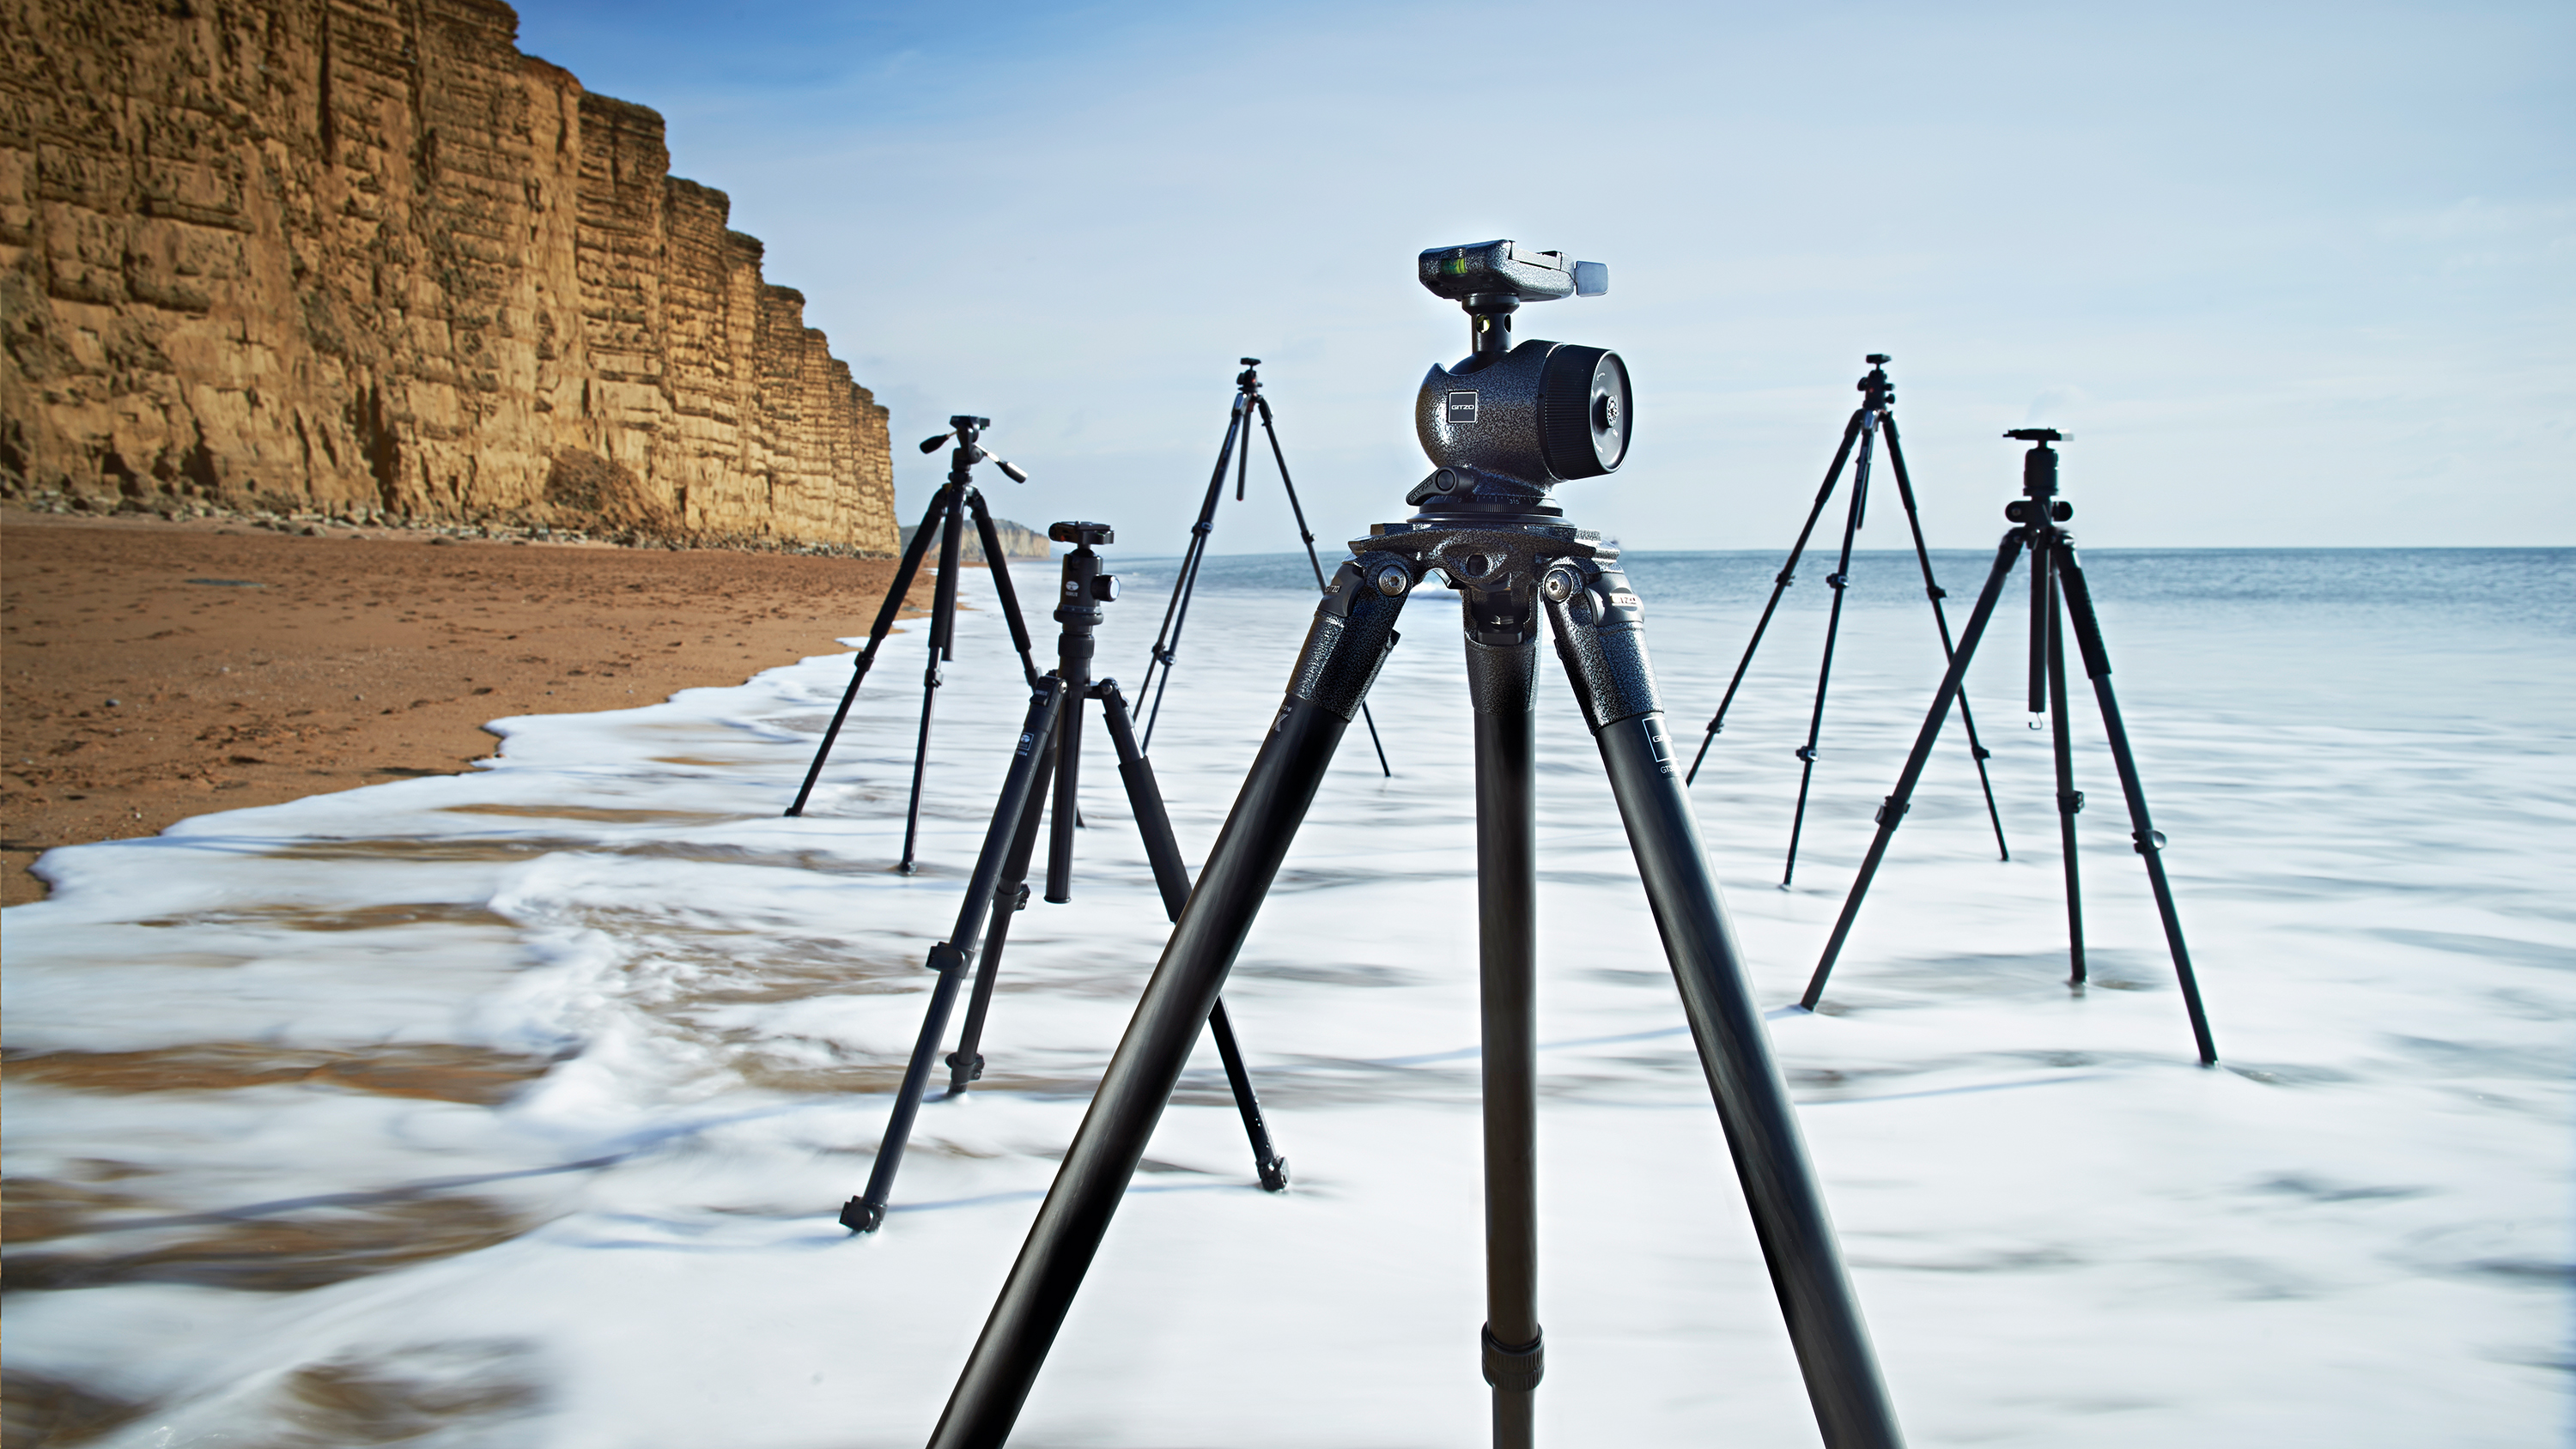 separation shoes e11cb 9ef17 Best tripods 2018: 10 supports to help you get sharper shots | TechRadar